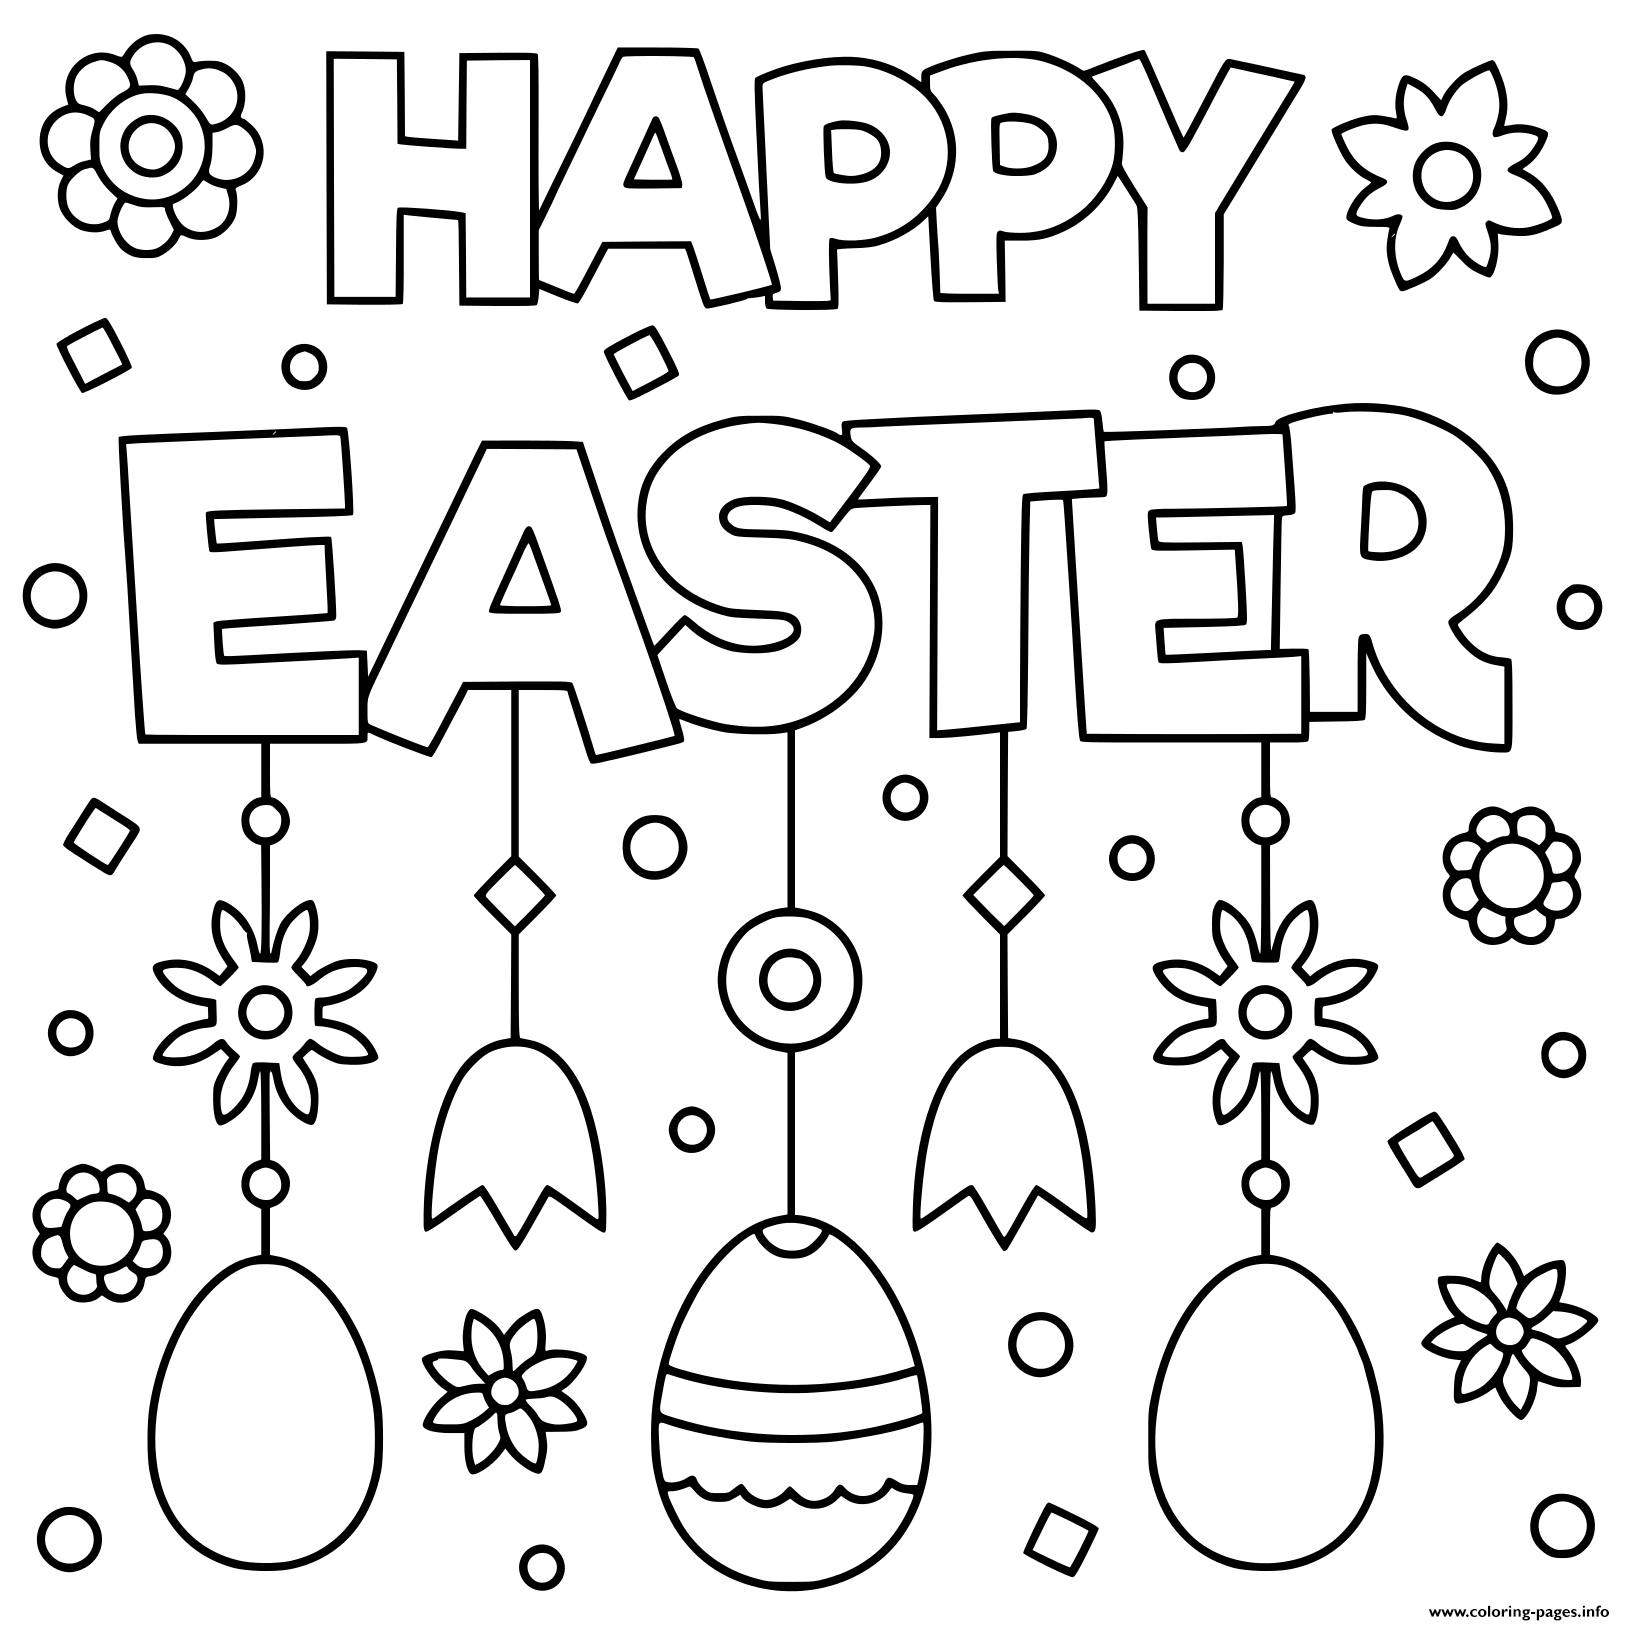 Happy Easter Egg Flowers Coloring Pages Printable